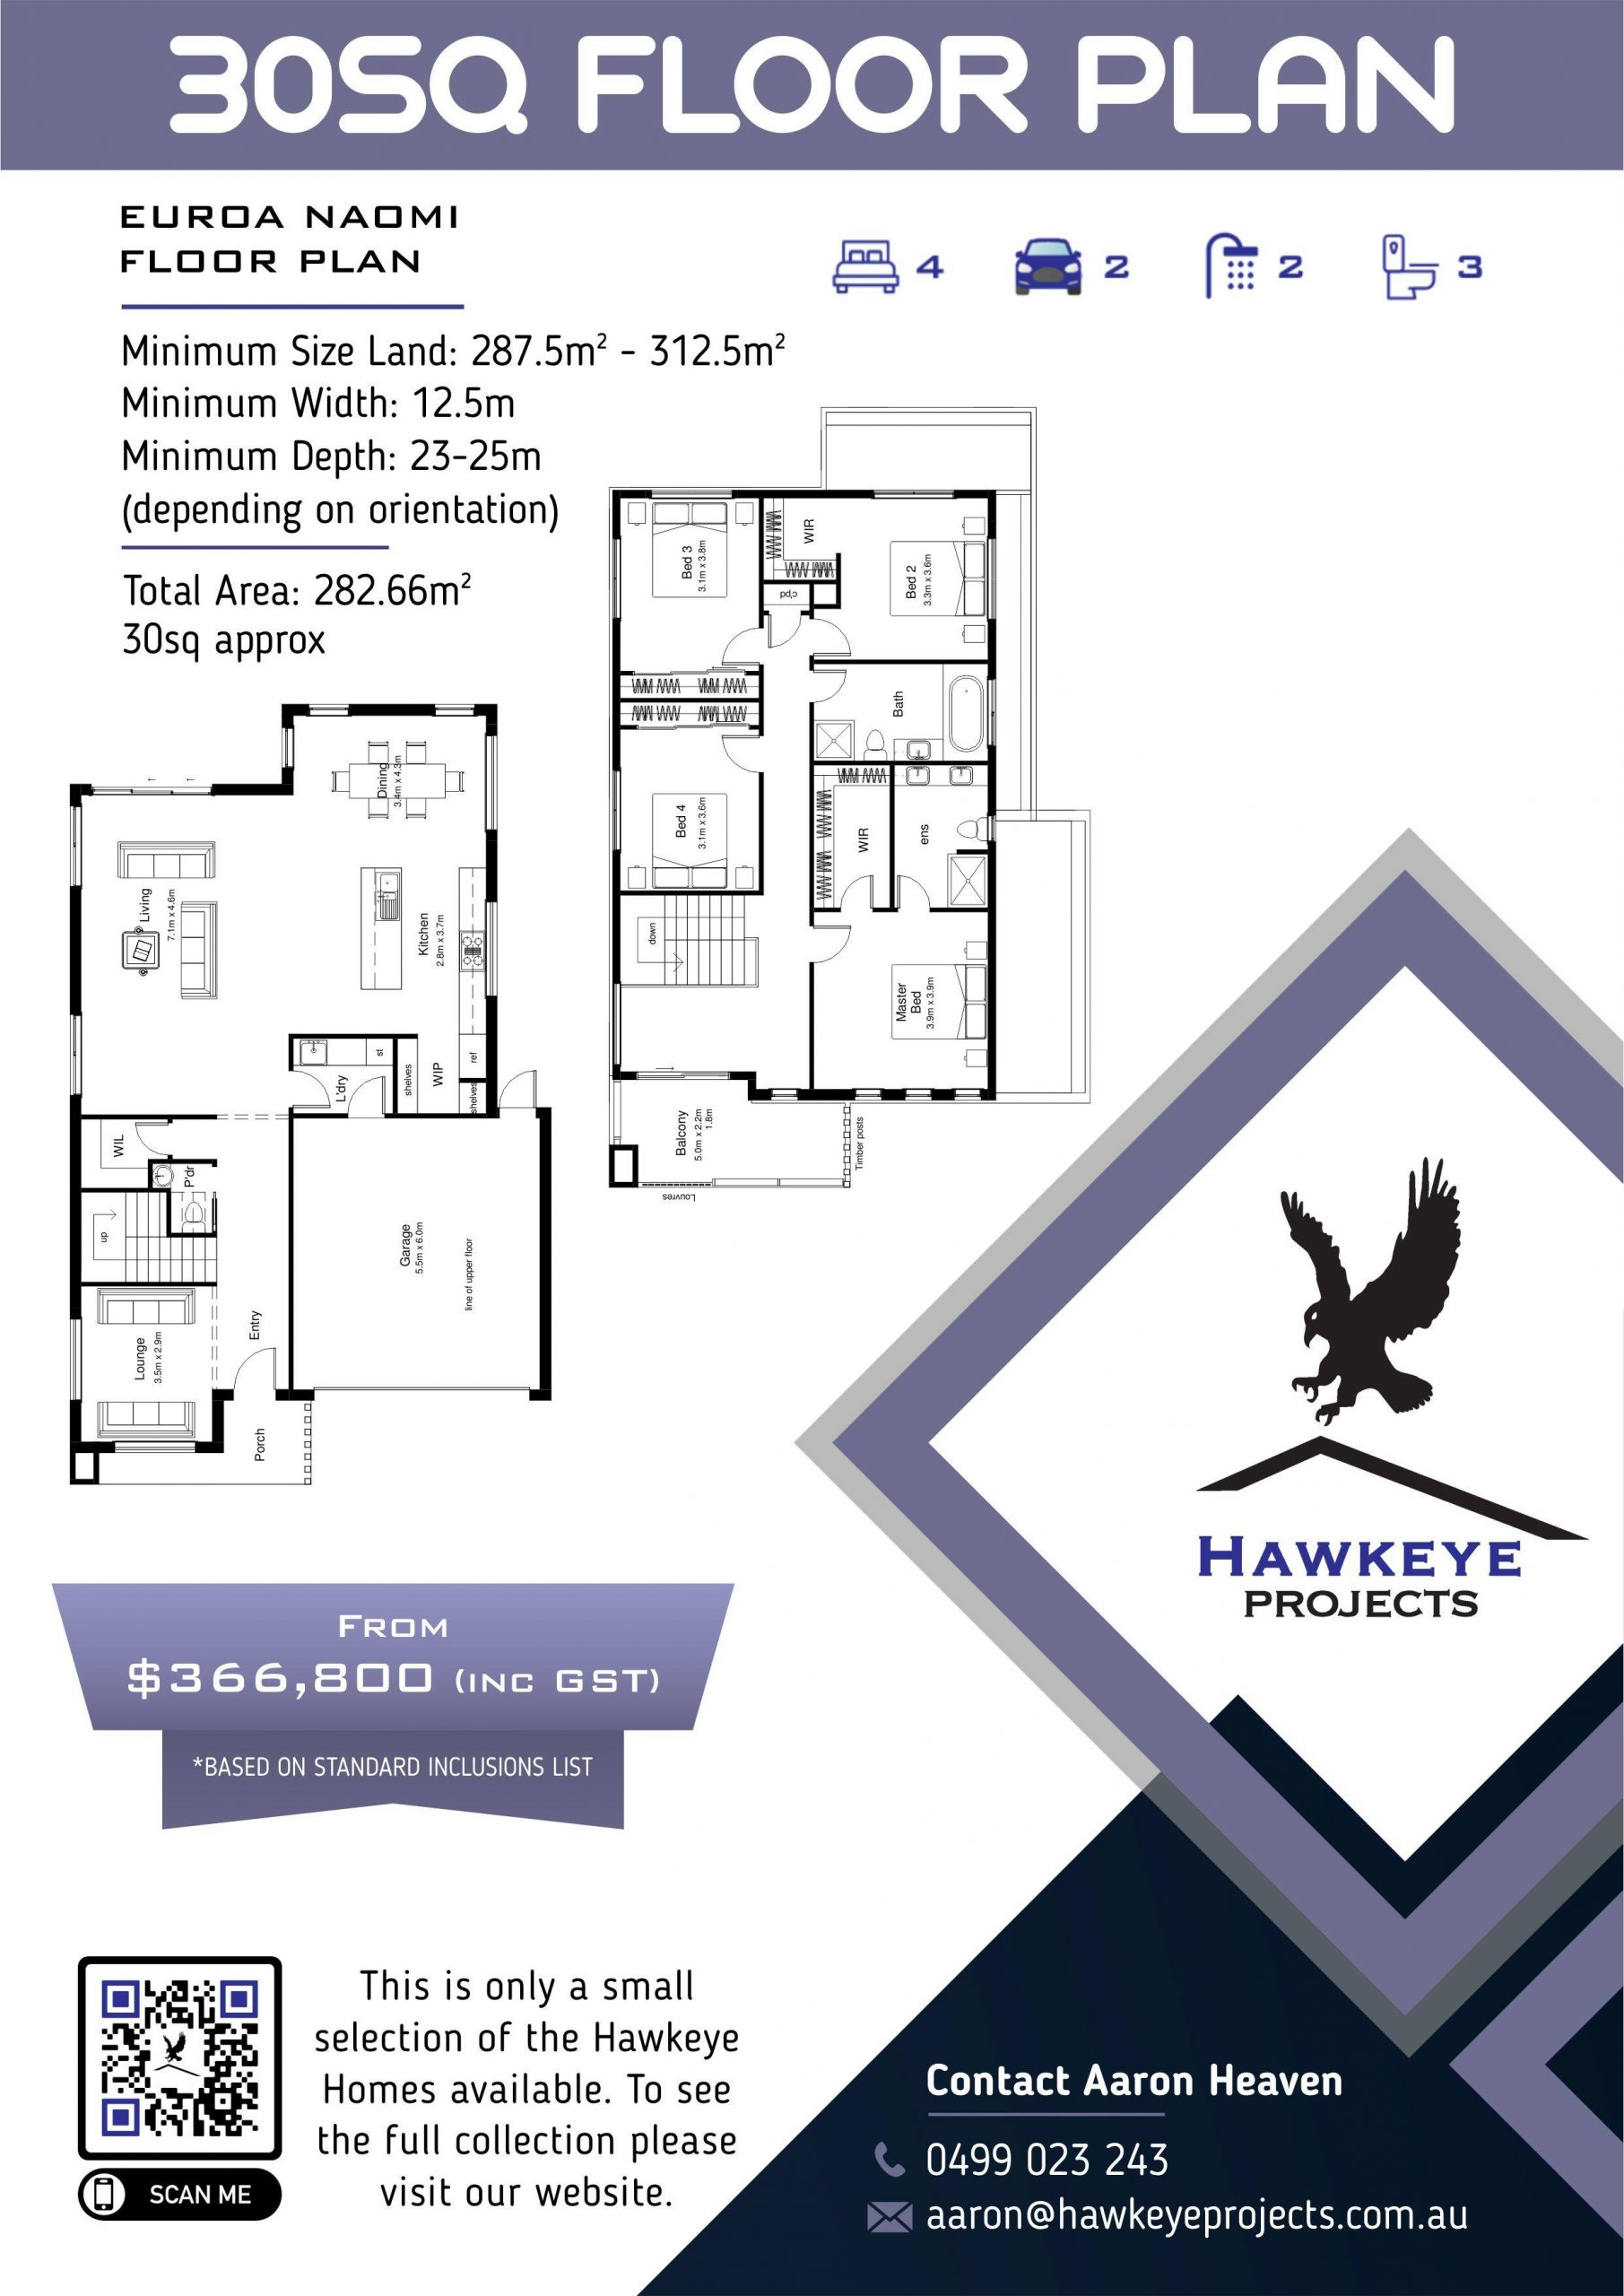 Hawkeye Projects 30SQ home plan